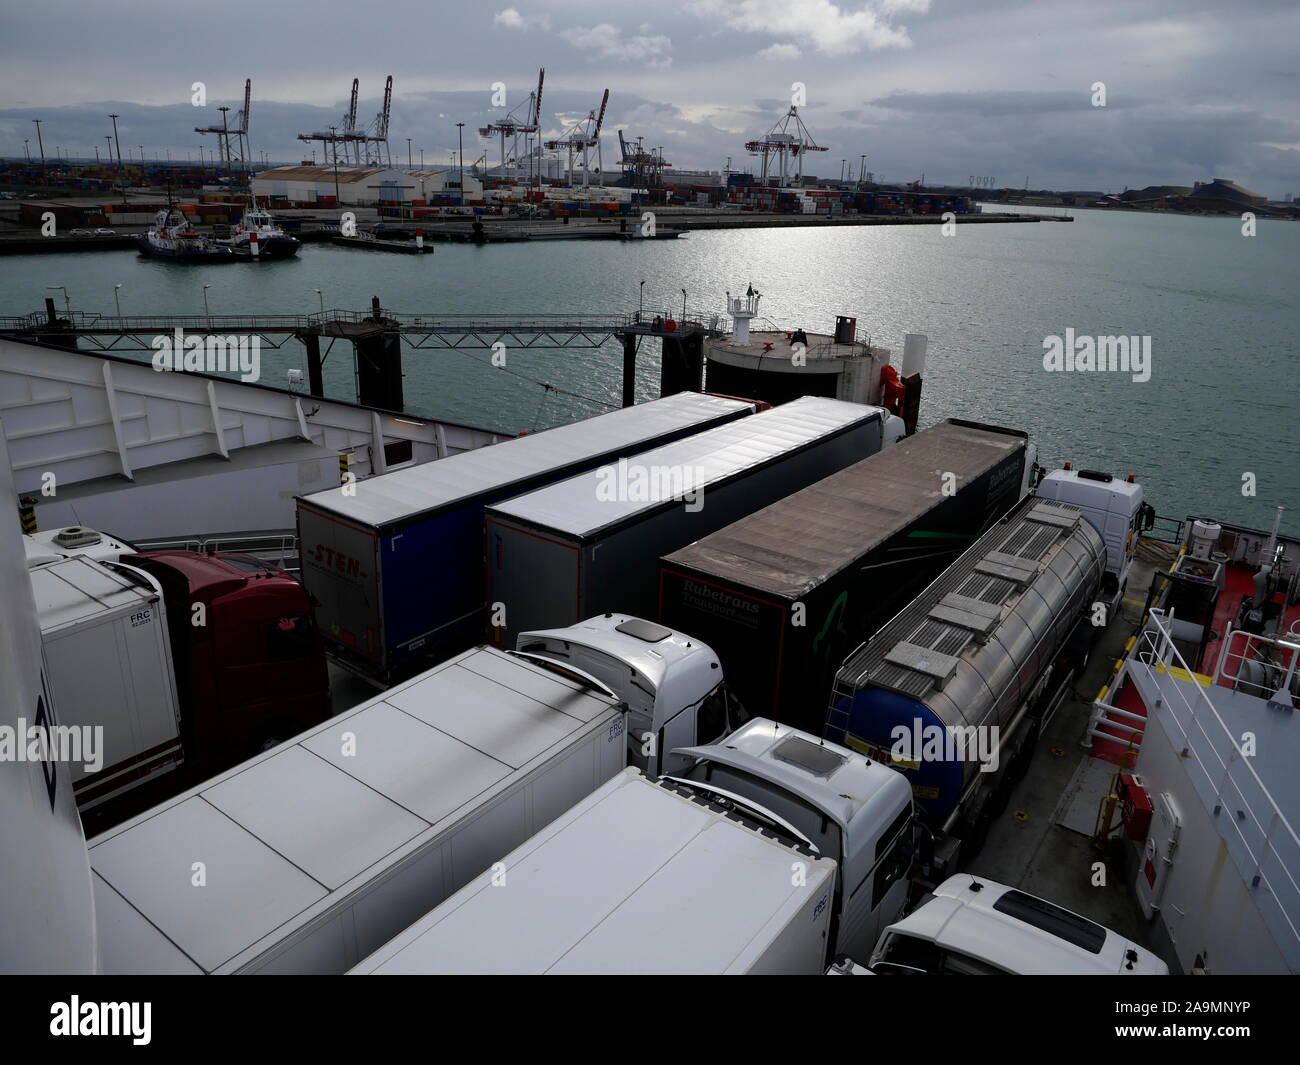 AJAXNETPHOTO. OCTOBER, 2019. DUNKERQUE, FRANCE. - CHANNEL FERRY CARGO - FREIGHT TRUCKS PARKED ON THE DECK OF A DFDS DOVER BOUND FERRY AS IT LEAVES THE PORT.PHOTO:JONATHAN EASTLAND/AJAX REF:GX8 191510 20908 Stock Photo